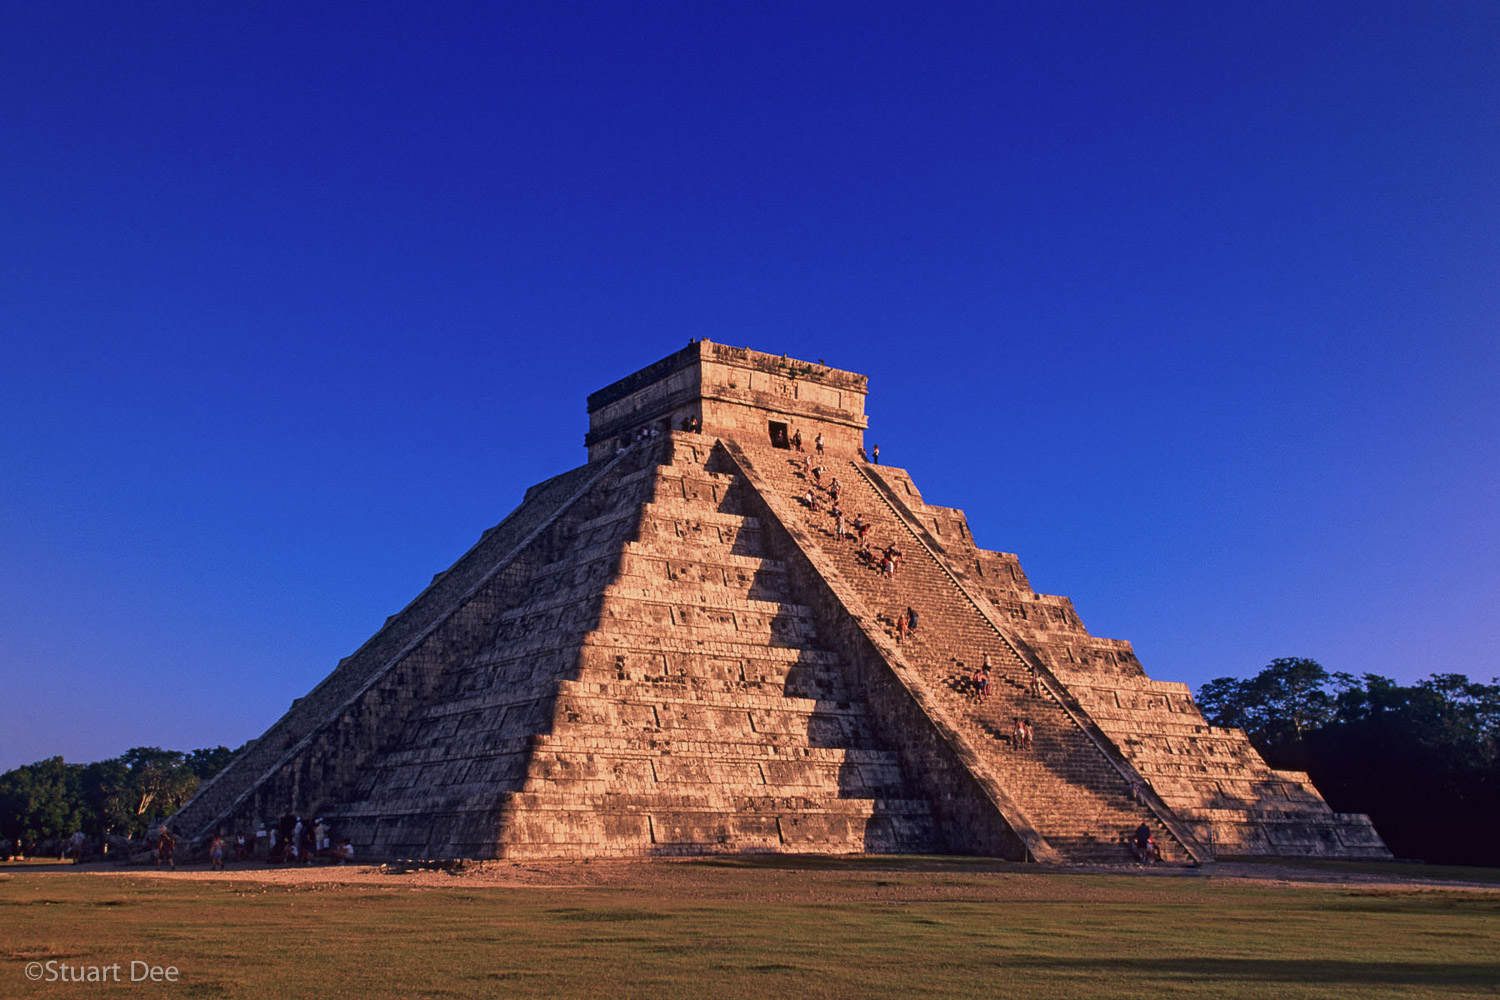 Mayan Pyramid of Kukulkan, (El Castillo or The Castle) at sunset, with some tourists climbing to the top, Chichen Itza, Mexico